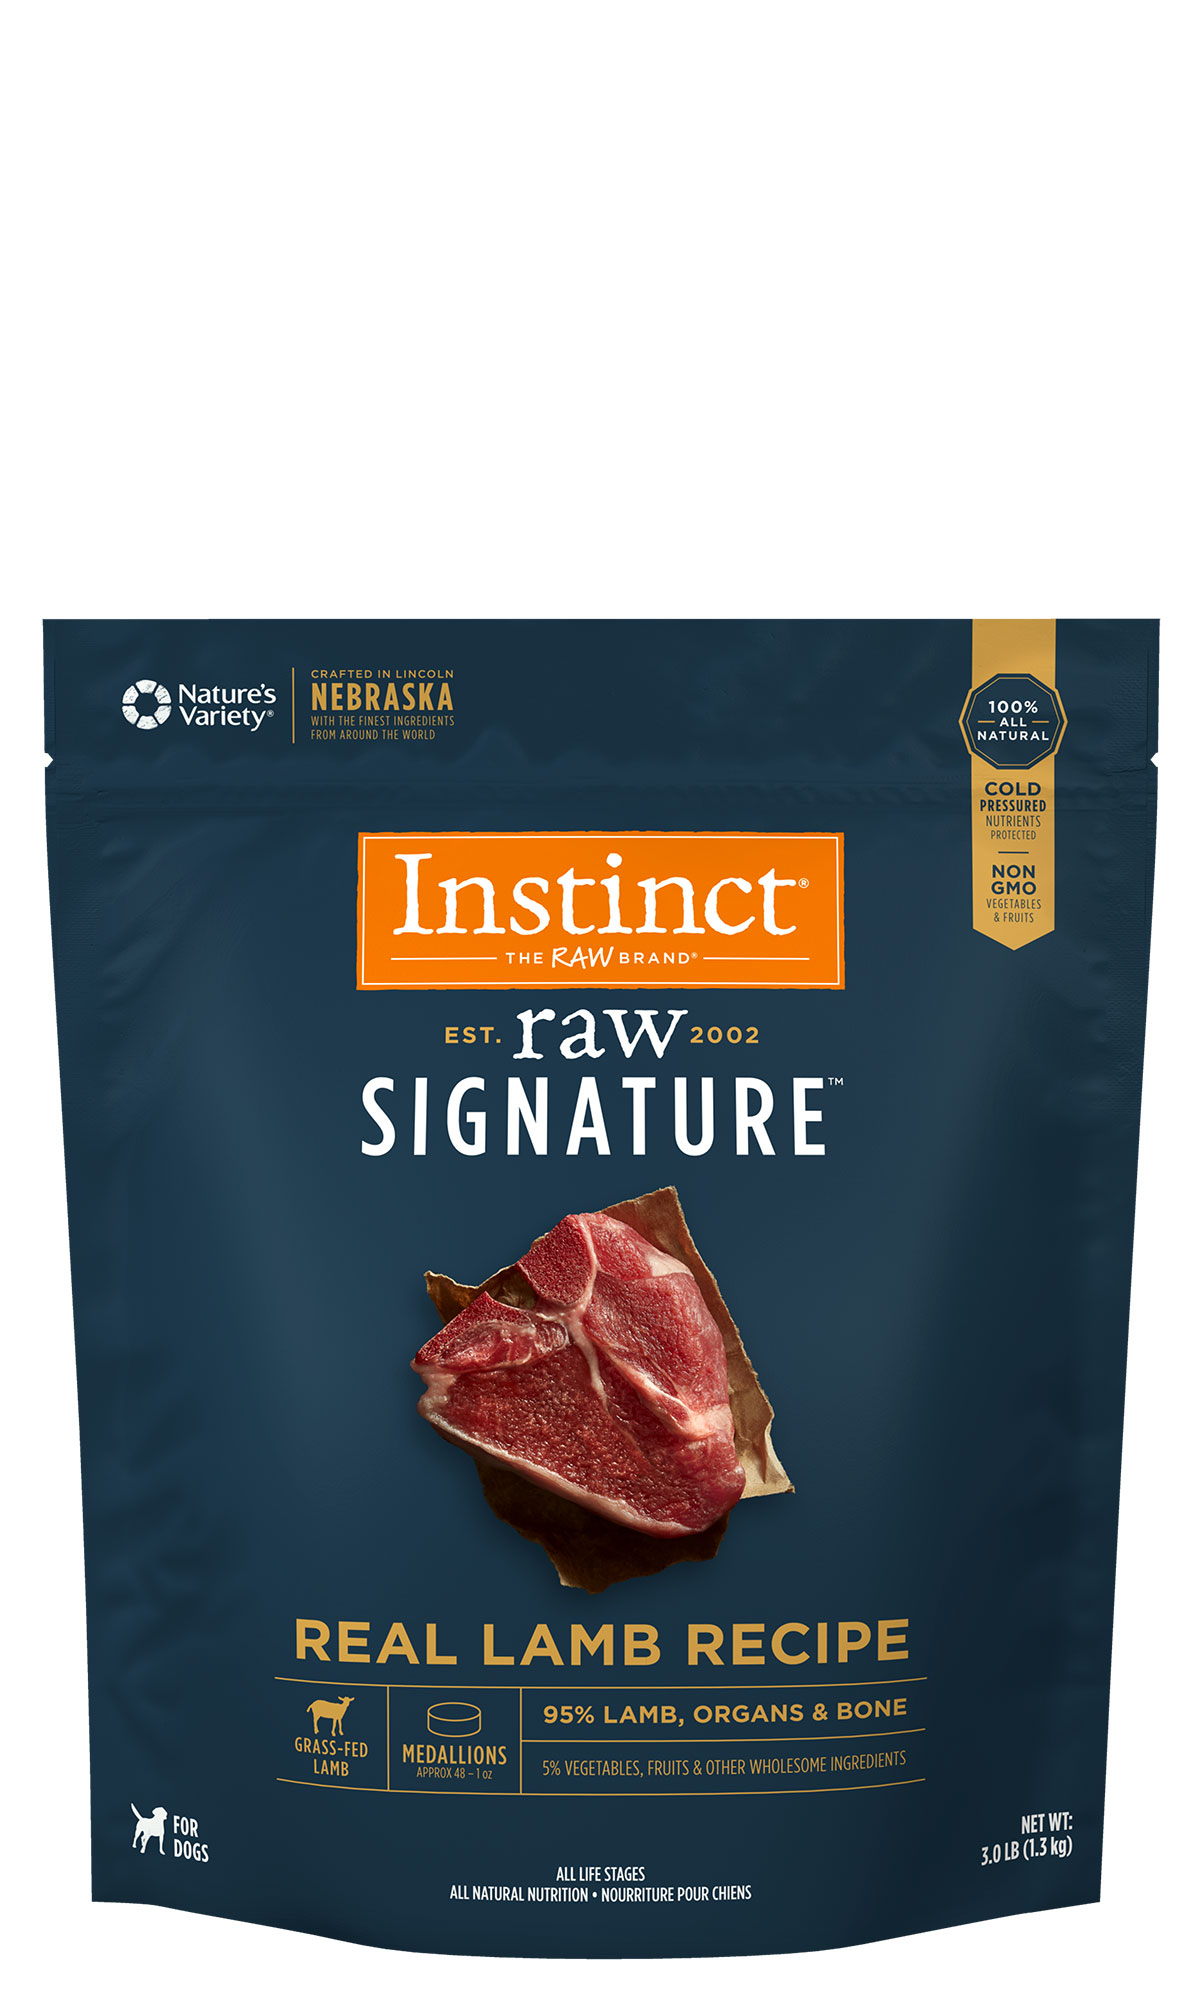 Instinct by Nature's Variety Raw Signature Real Lamb Recipe Medallion Grain-Free Frozen Dog Food, 3-lb (Size: 3-lb) Image